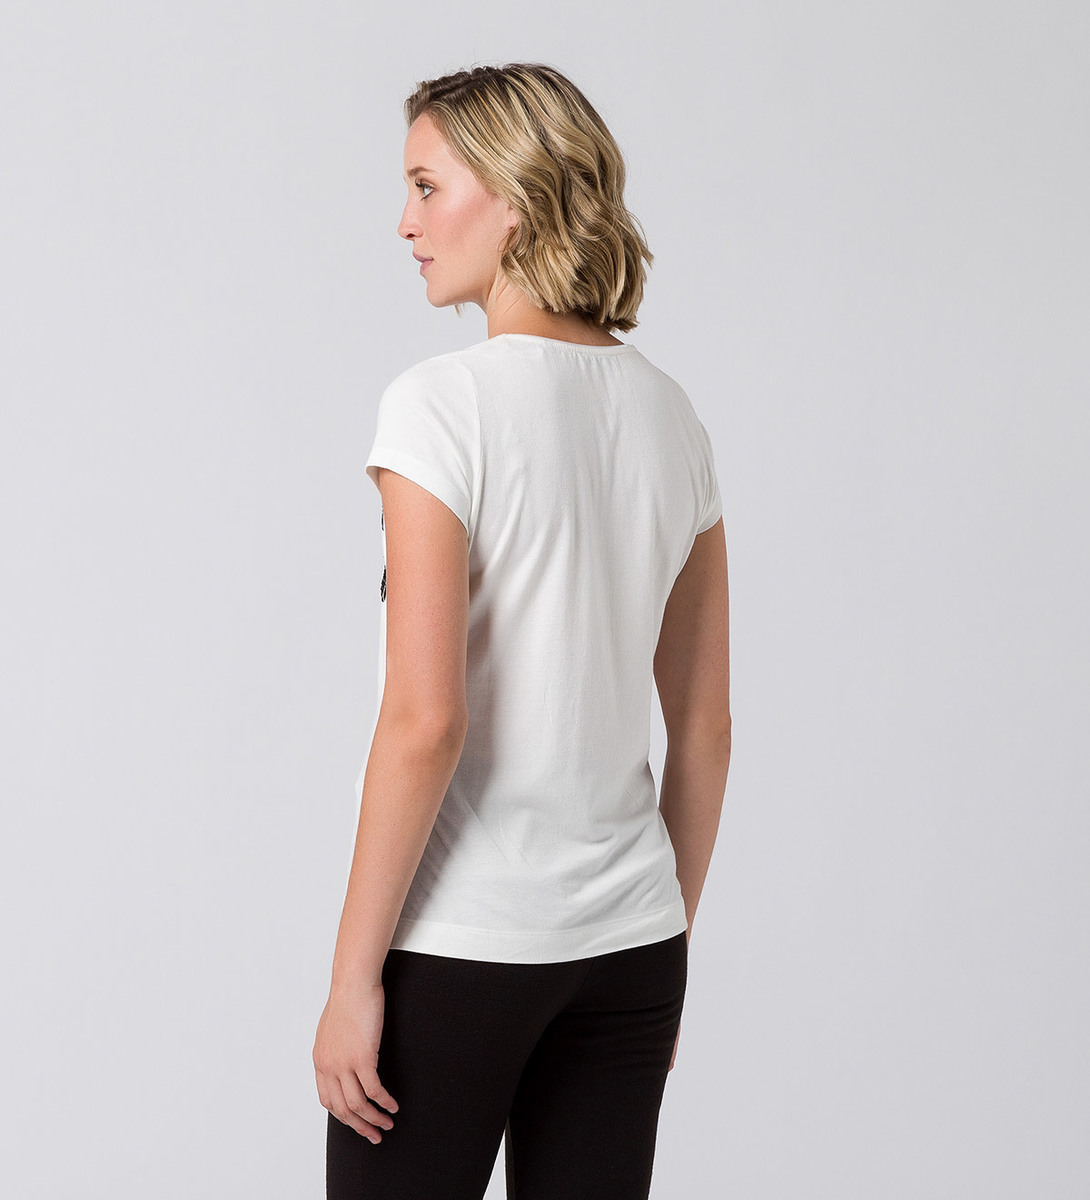 T-Shirt mit Statementprint in offwhite